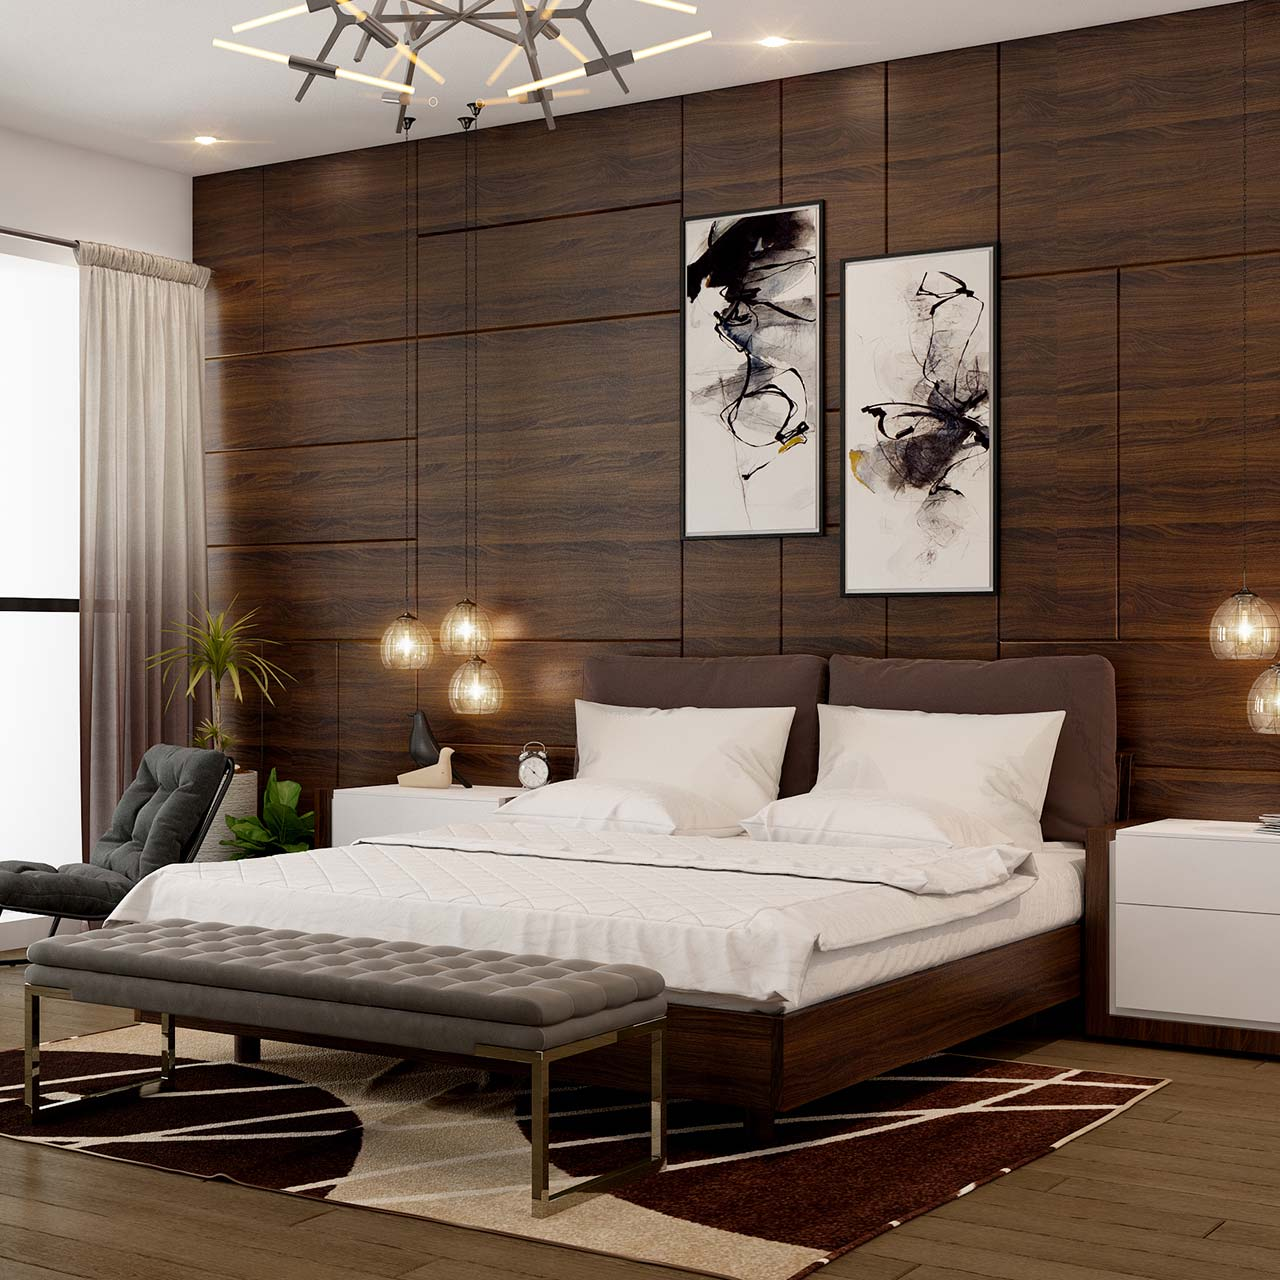 ideas to interior design your bedroom